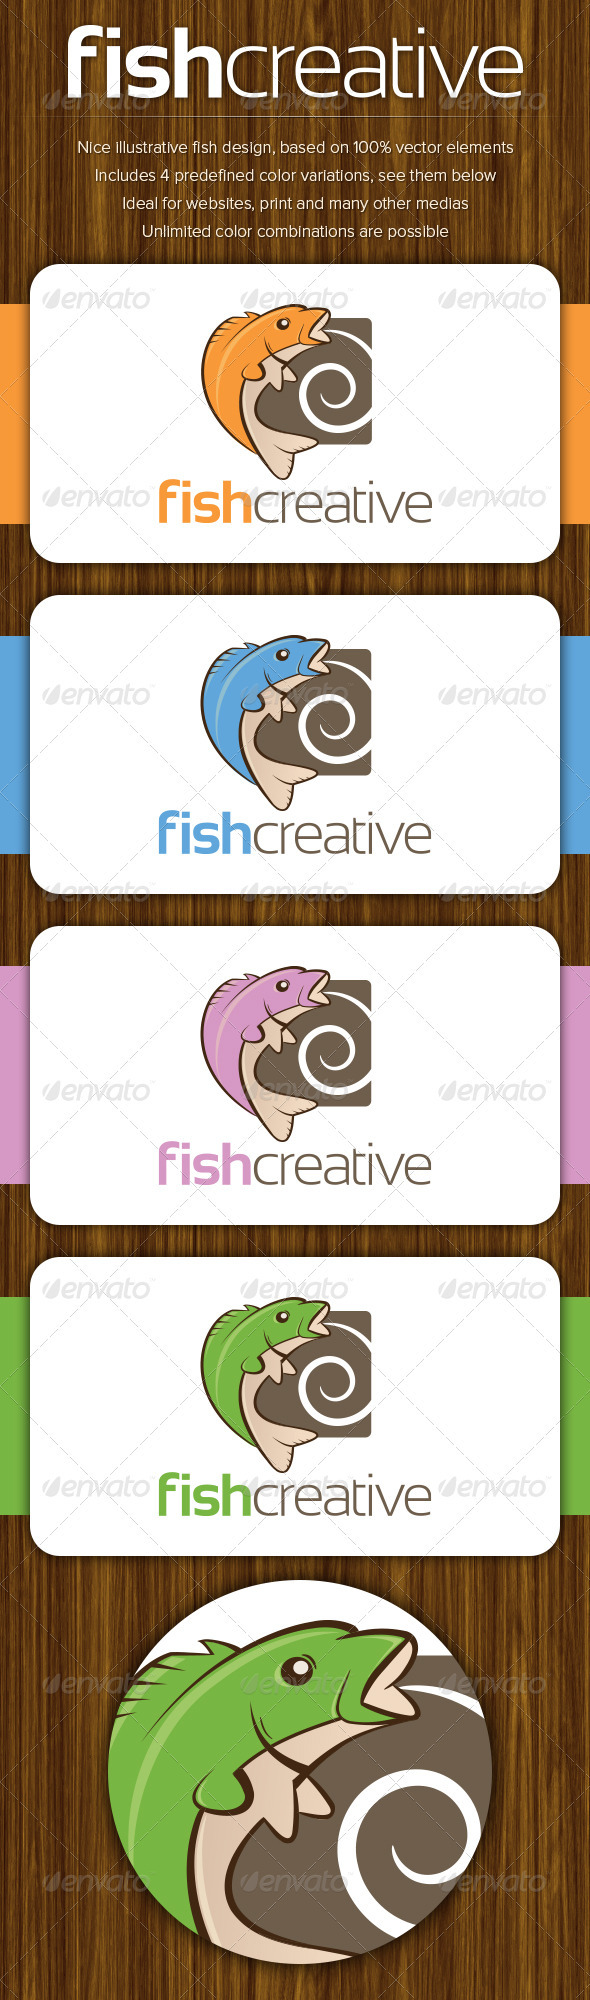 FishCreative - Illustrative Fish Logo Template - Animals Logo Templates